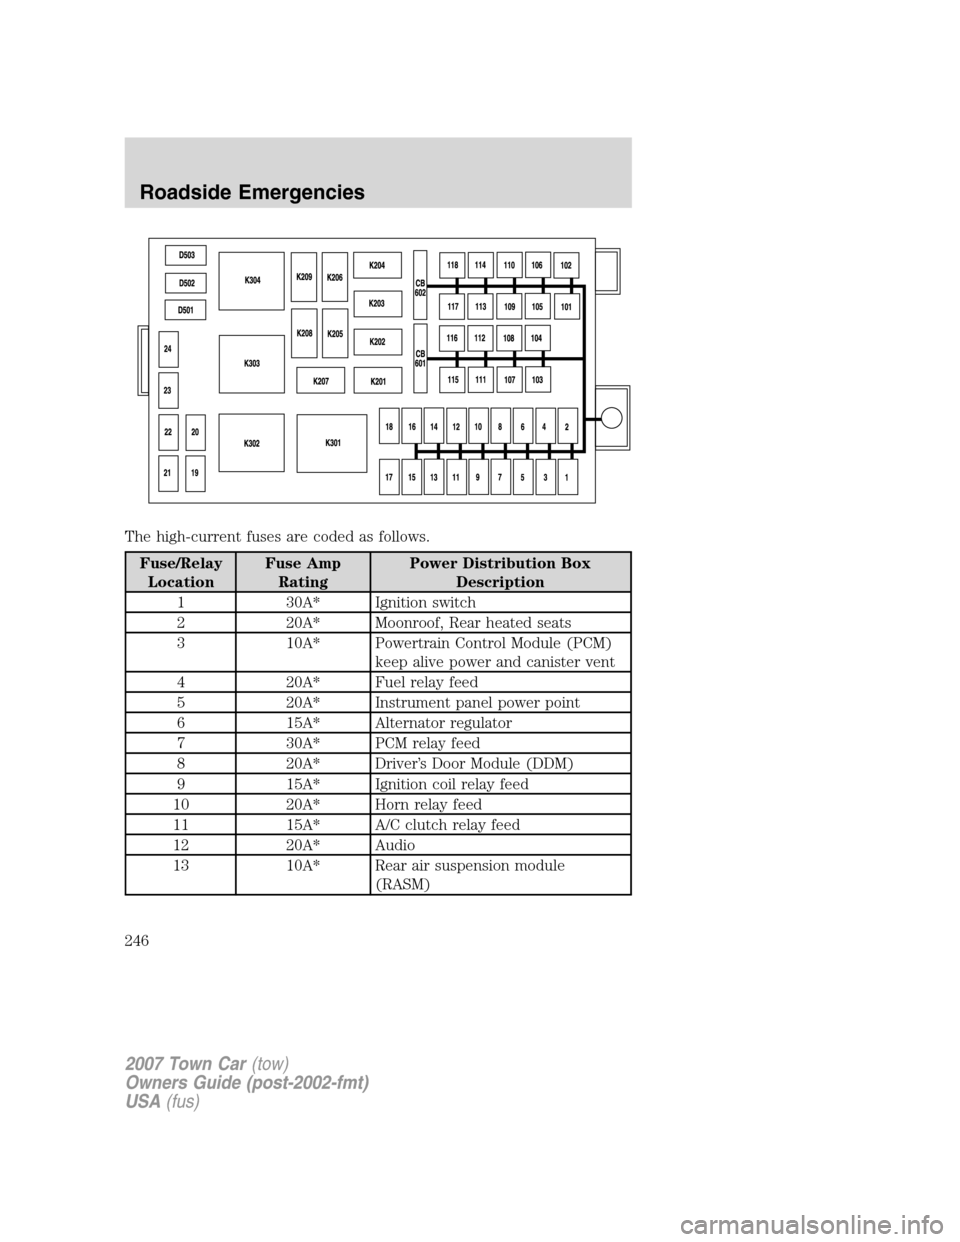 LINCOLN TOWN CAR 2007 Owners Manual, Page 246